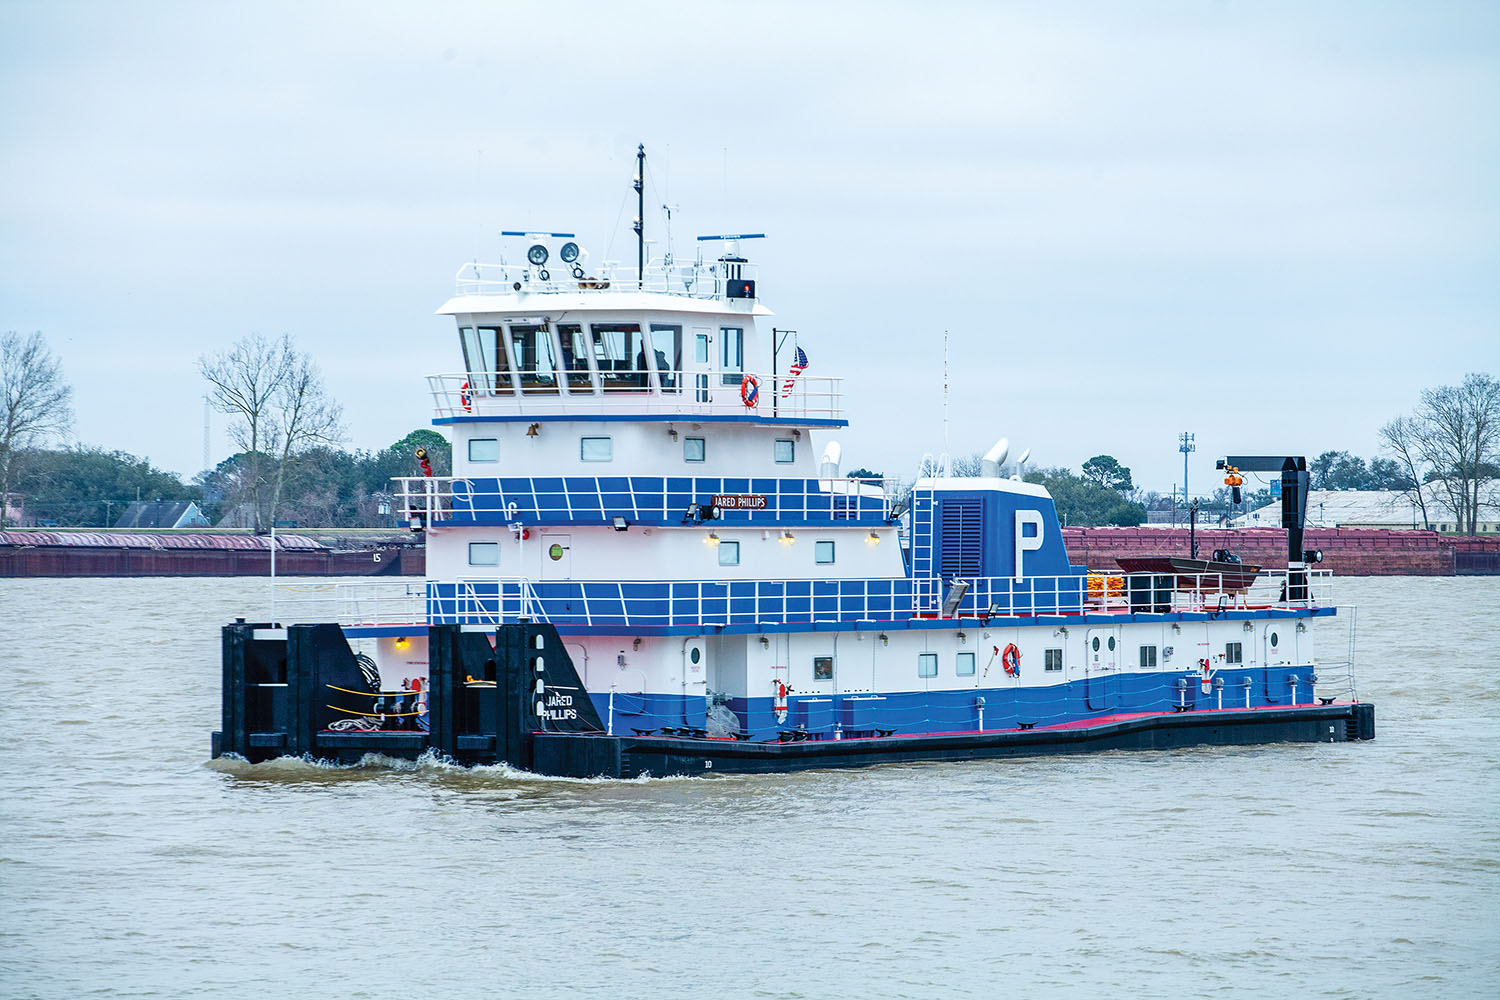 The 4,200 hp. mv. Jared Phillips is powered by twin Caterpillar 3516 diesels. It is the fifth towboat built at FMT Shipyard on the Harvey Canal. (Photo by Frank McCormack)